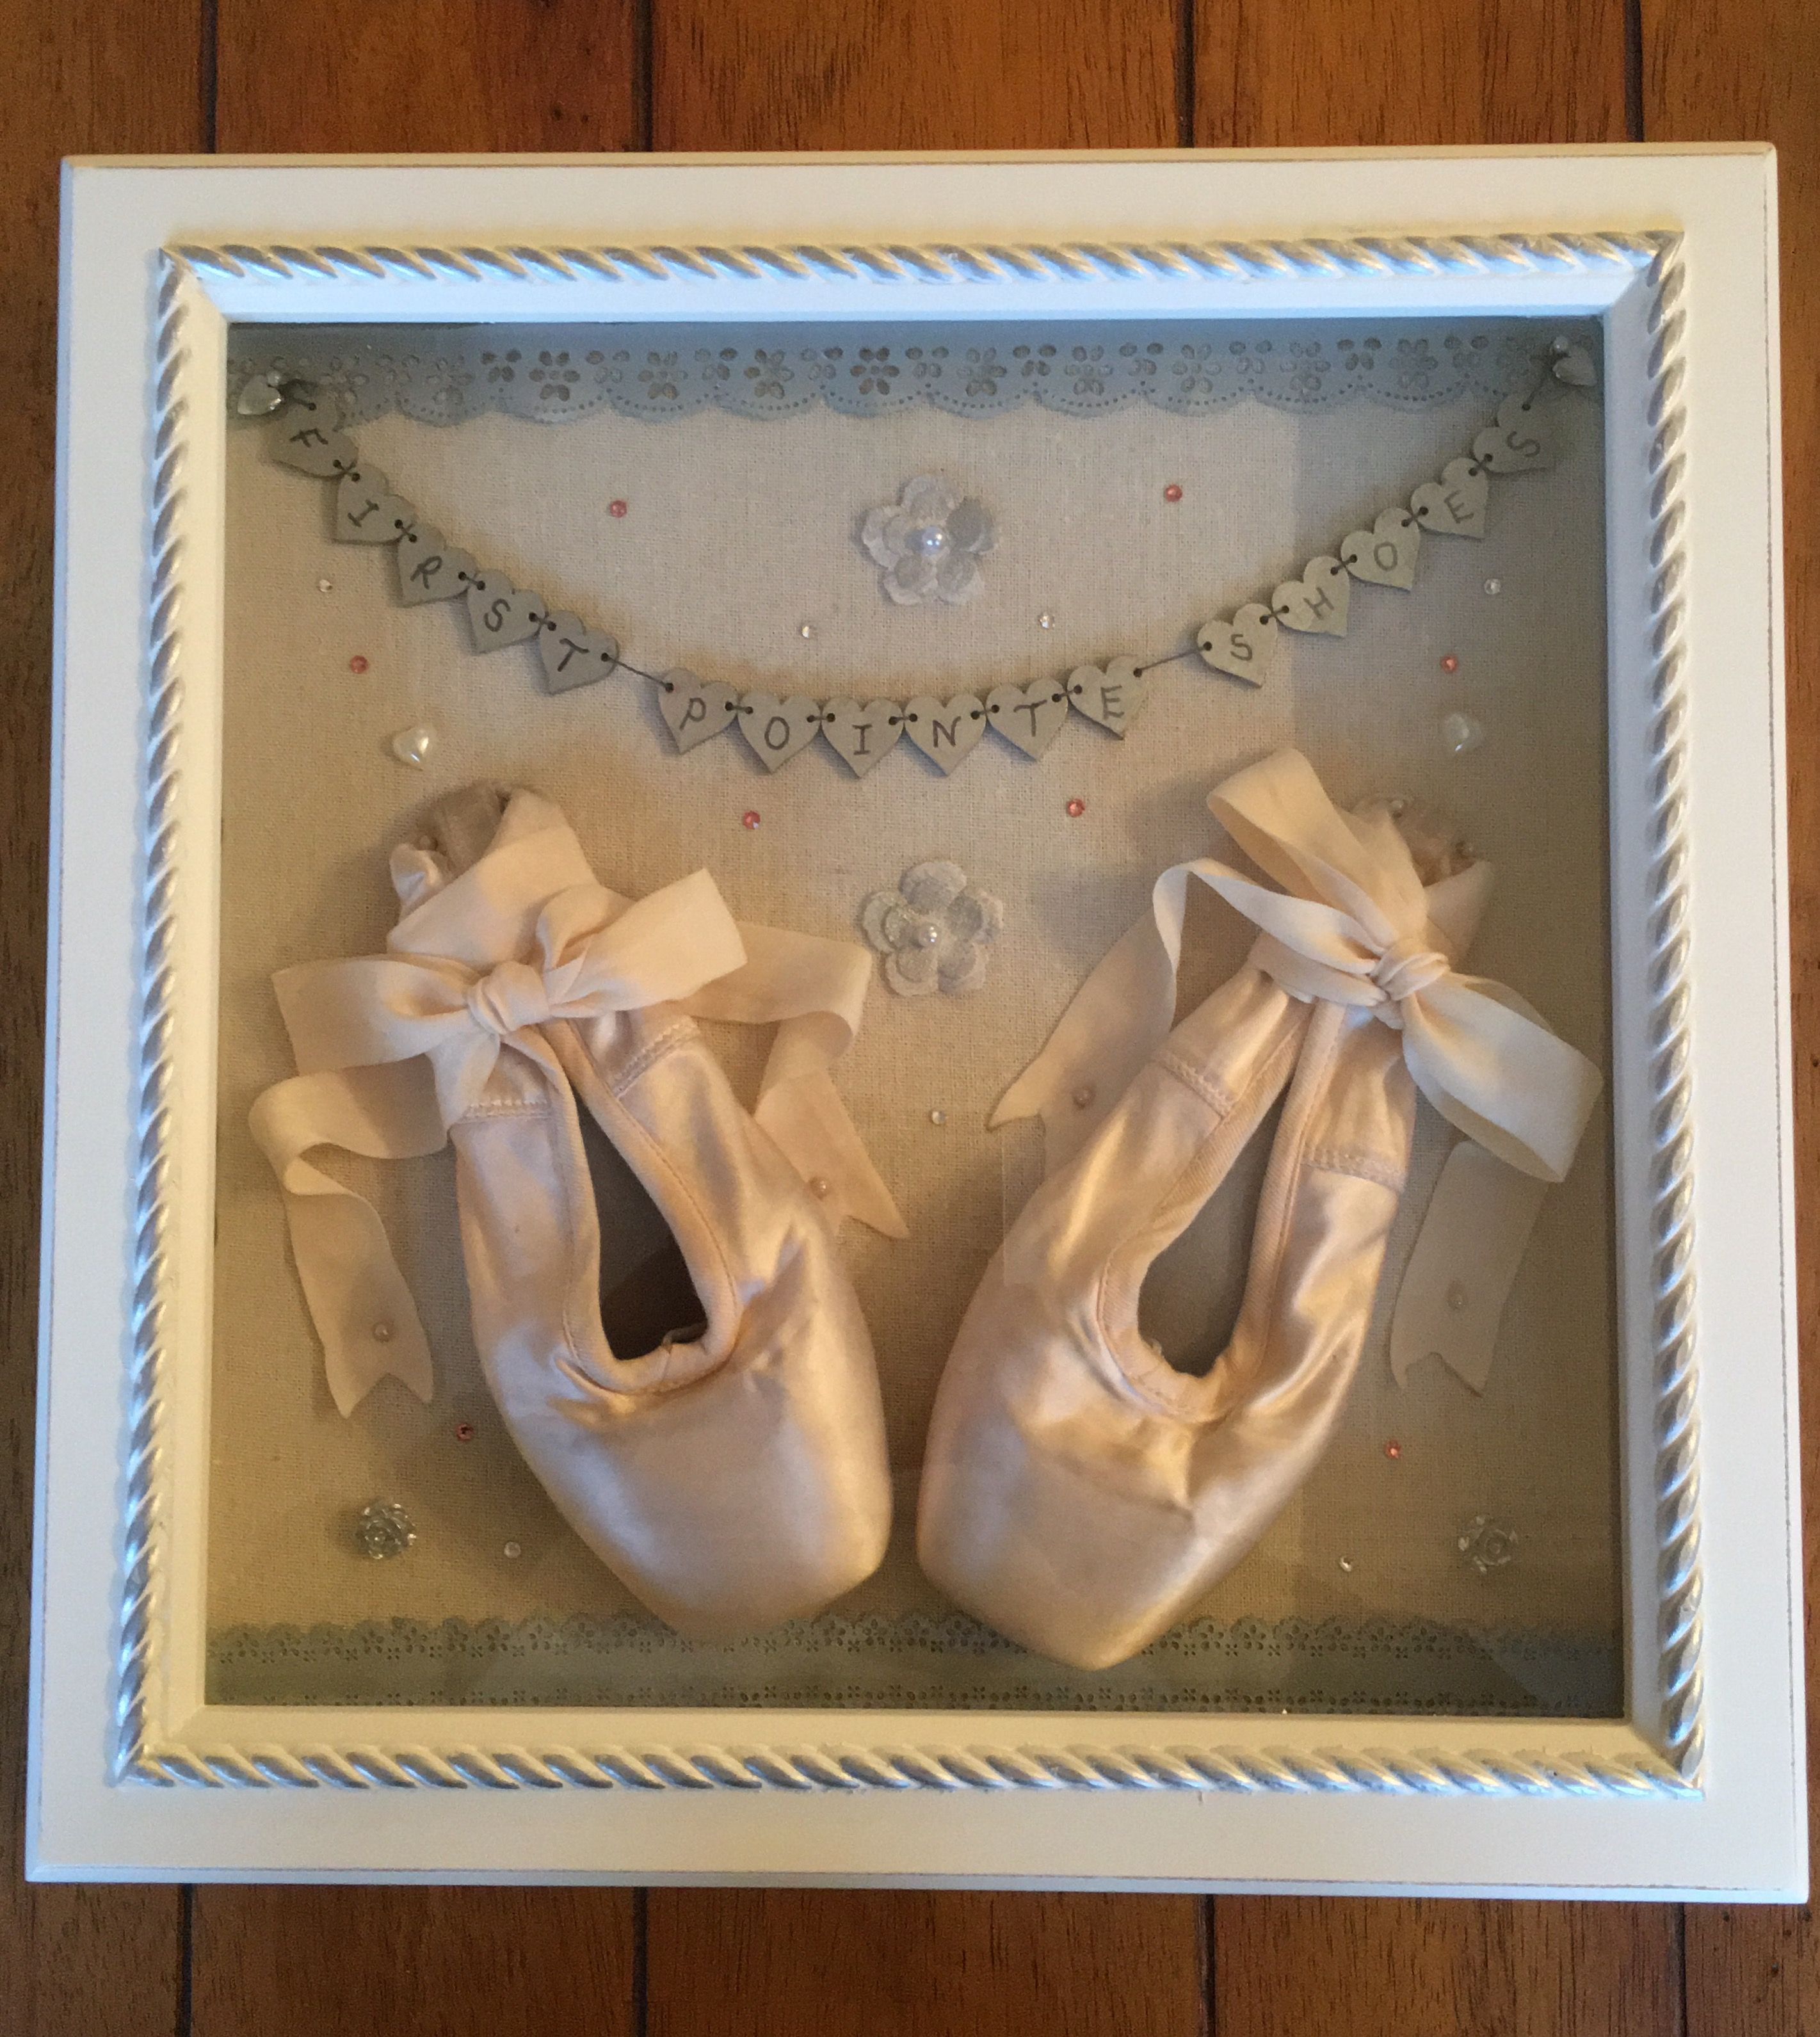 a52c5066bf71 First Point Shoe Keepsake lovely deep box frame great way to treasure your  memories #balletdancer